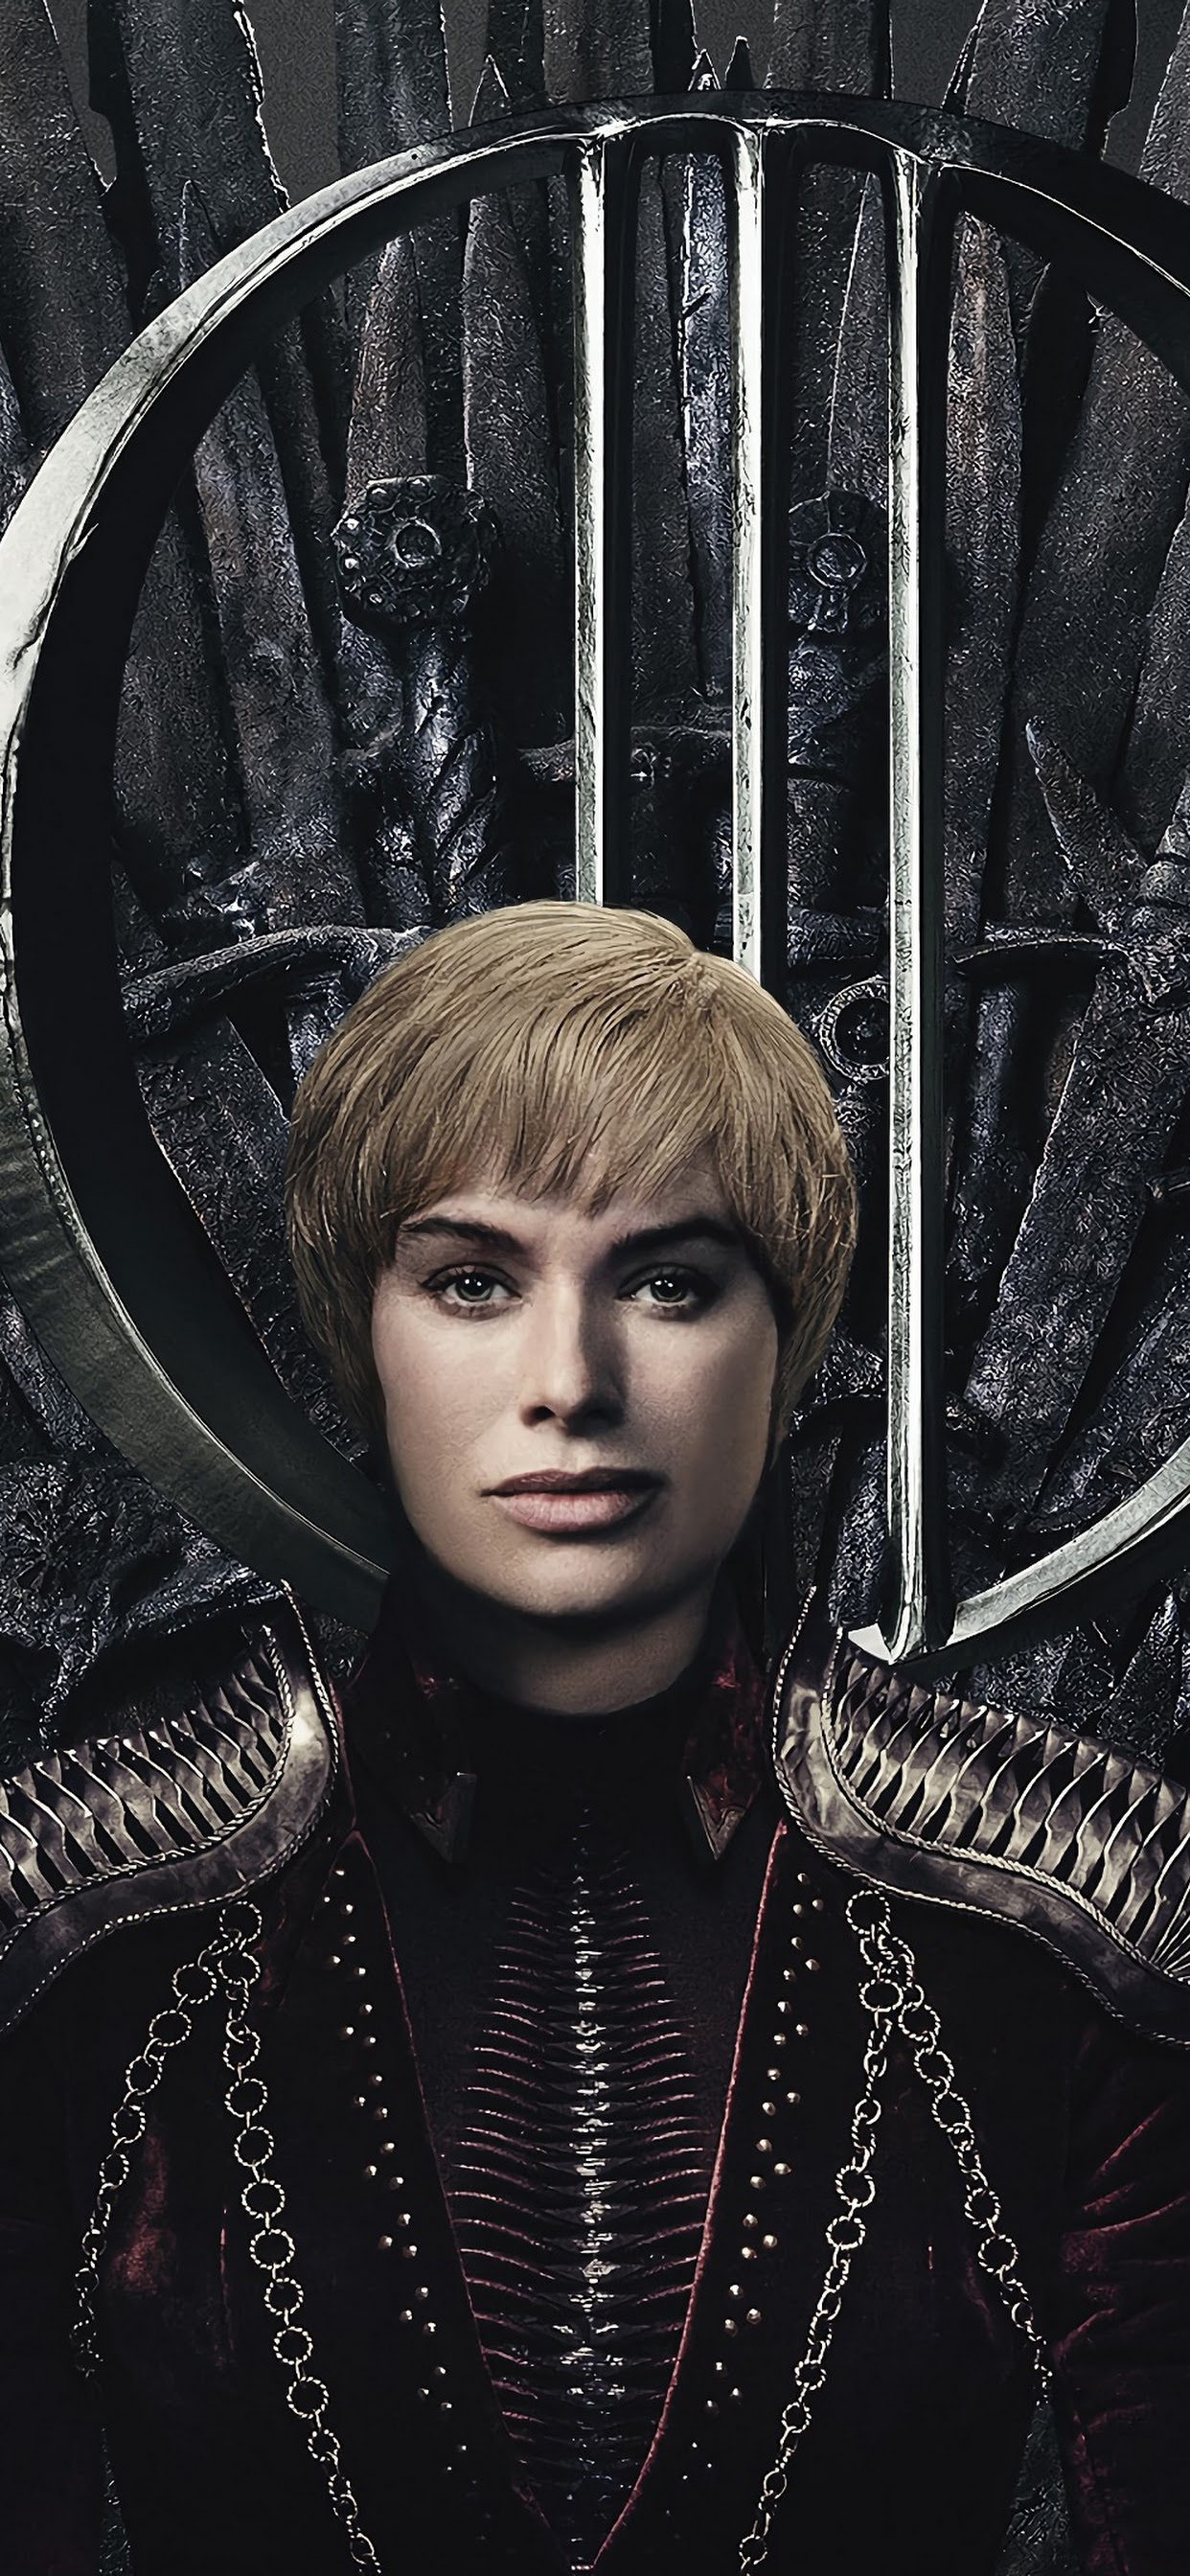 Iphone Xs Max - Game Of Thrones Season 8 Poster Cersei , HD Wallpaper & Backgrounds